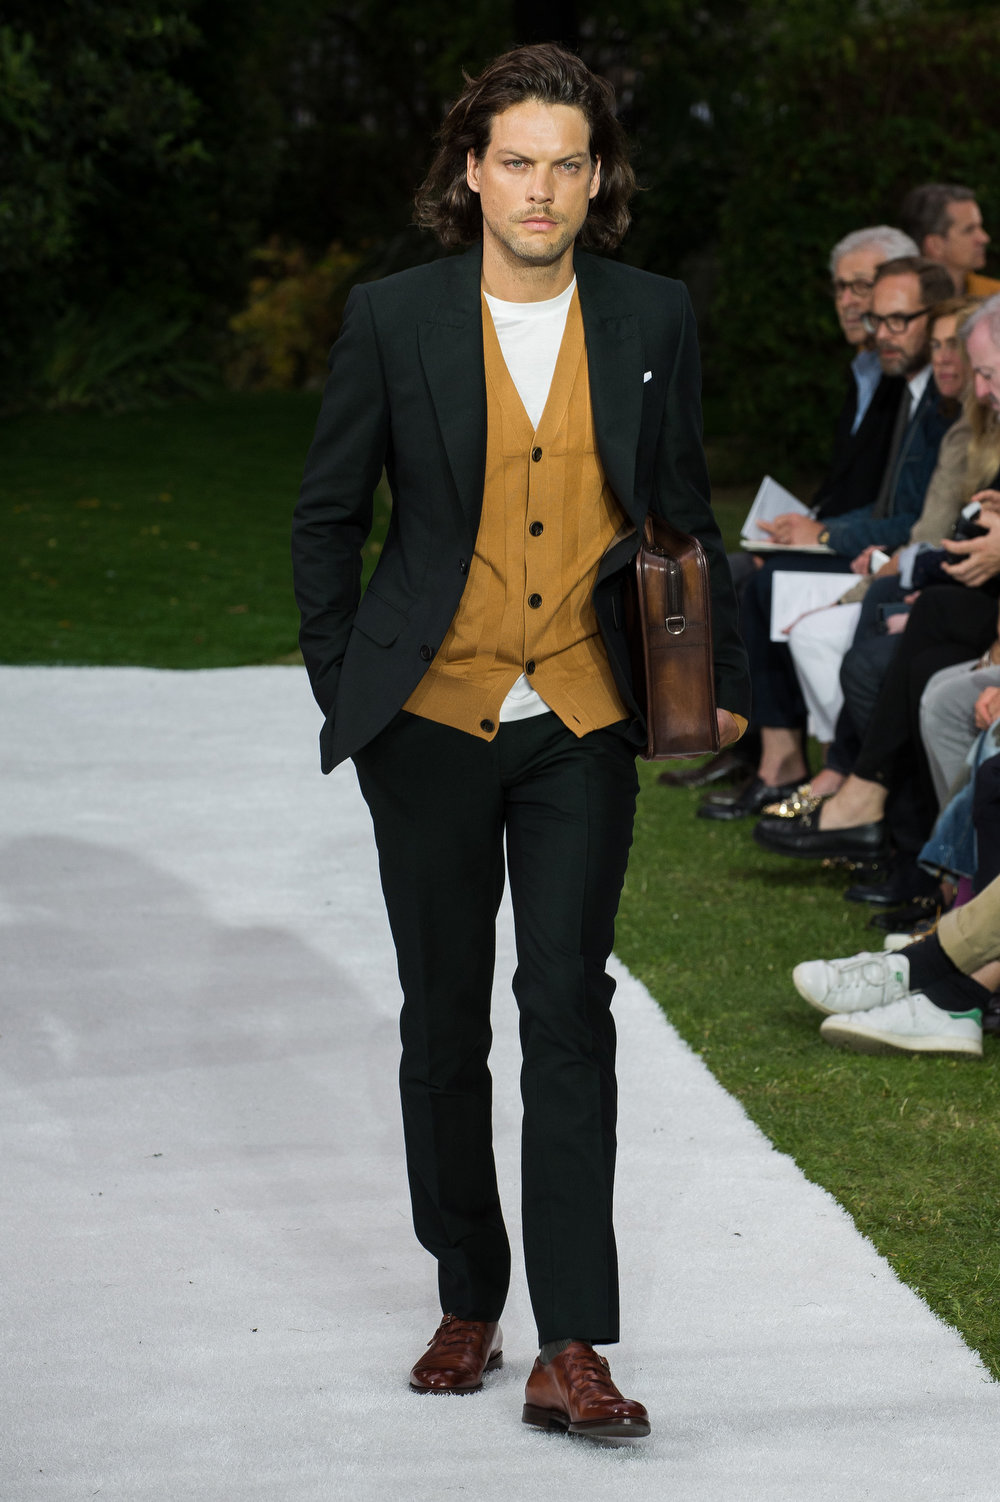 . A model walks the runway during the Berluti  show as part of the Paris Fashion Week Menswear Spring/Summer 2015 on June 27, 2014 in Paris, France.  (Photo by Francois Durand/Getty Images)